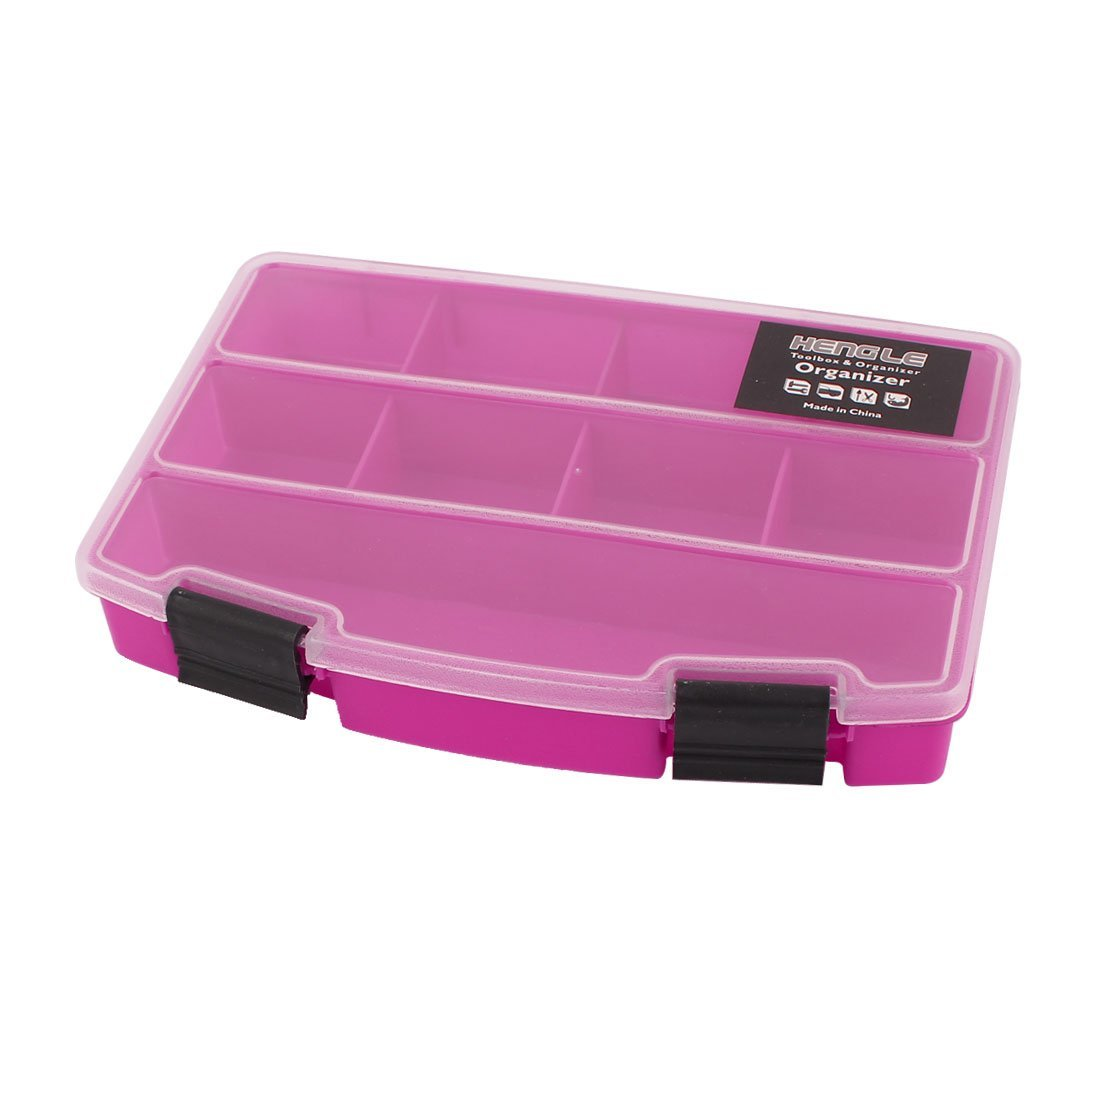 Aexit Plastic 9 Tool Organizers Slots Electronic Components Storage Box Tool Boxes Organizer Fuchsia